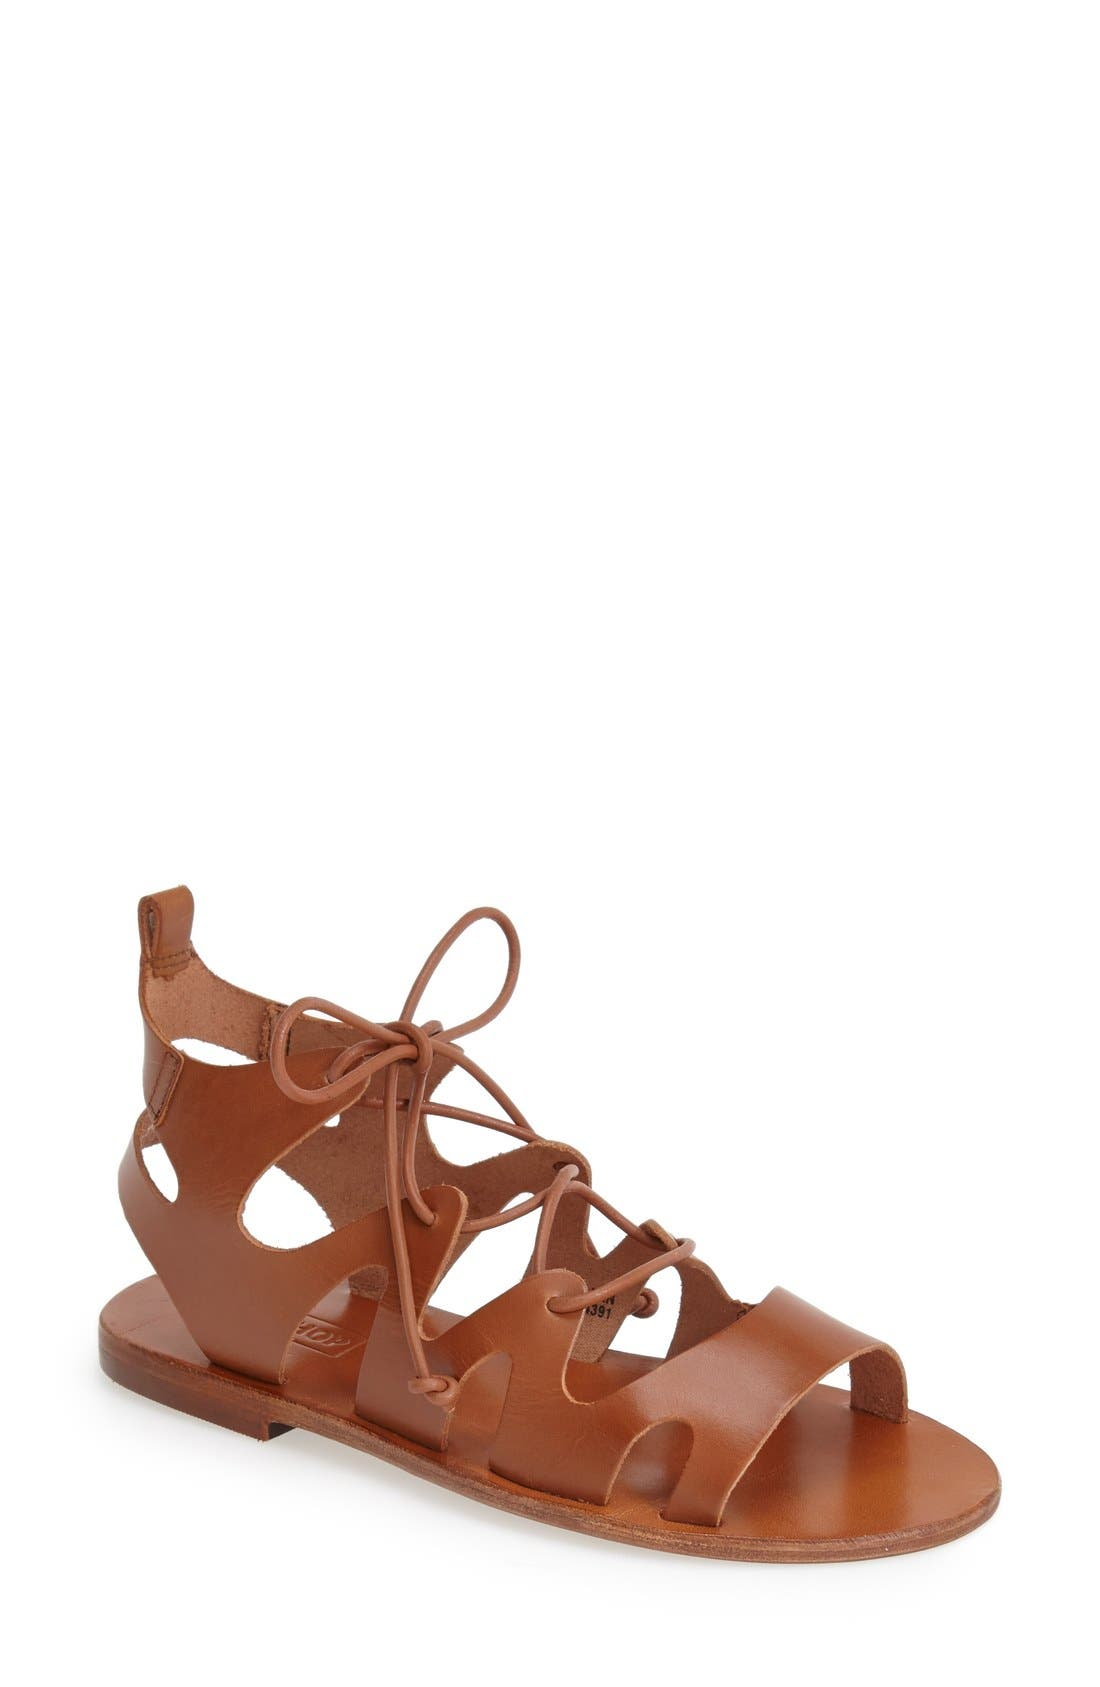 TOPSHOP 'Fig' Cutout Lace-Up Gladiator Sandal, Main, color, 210